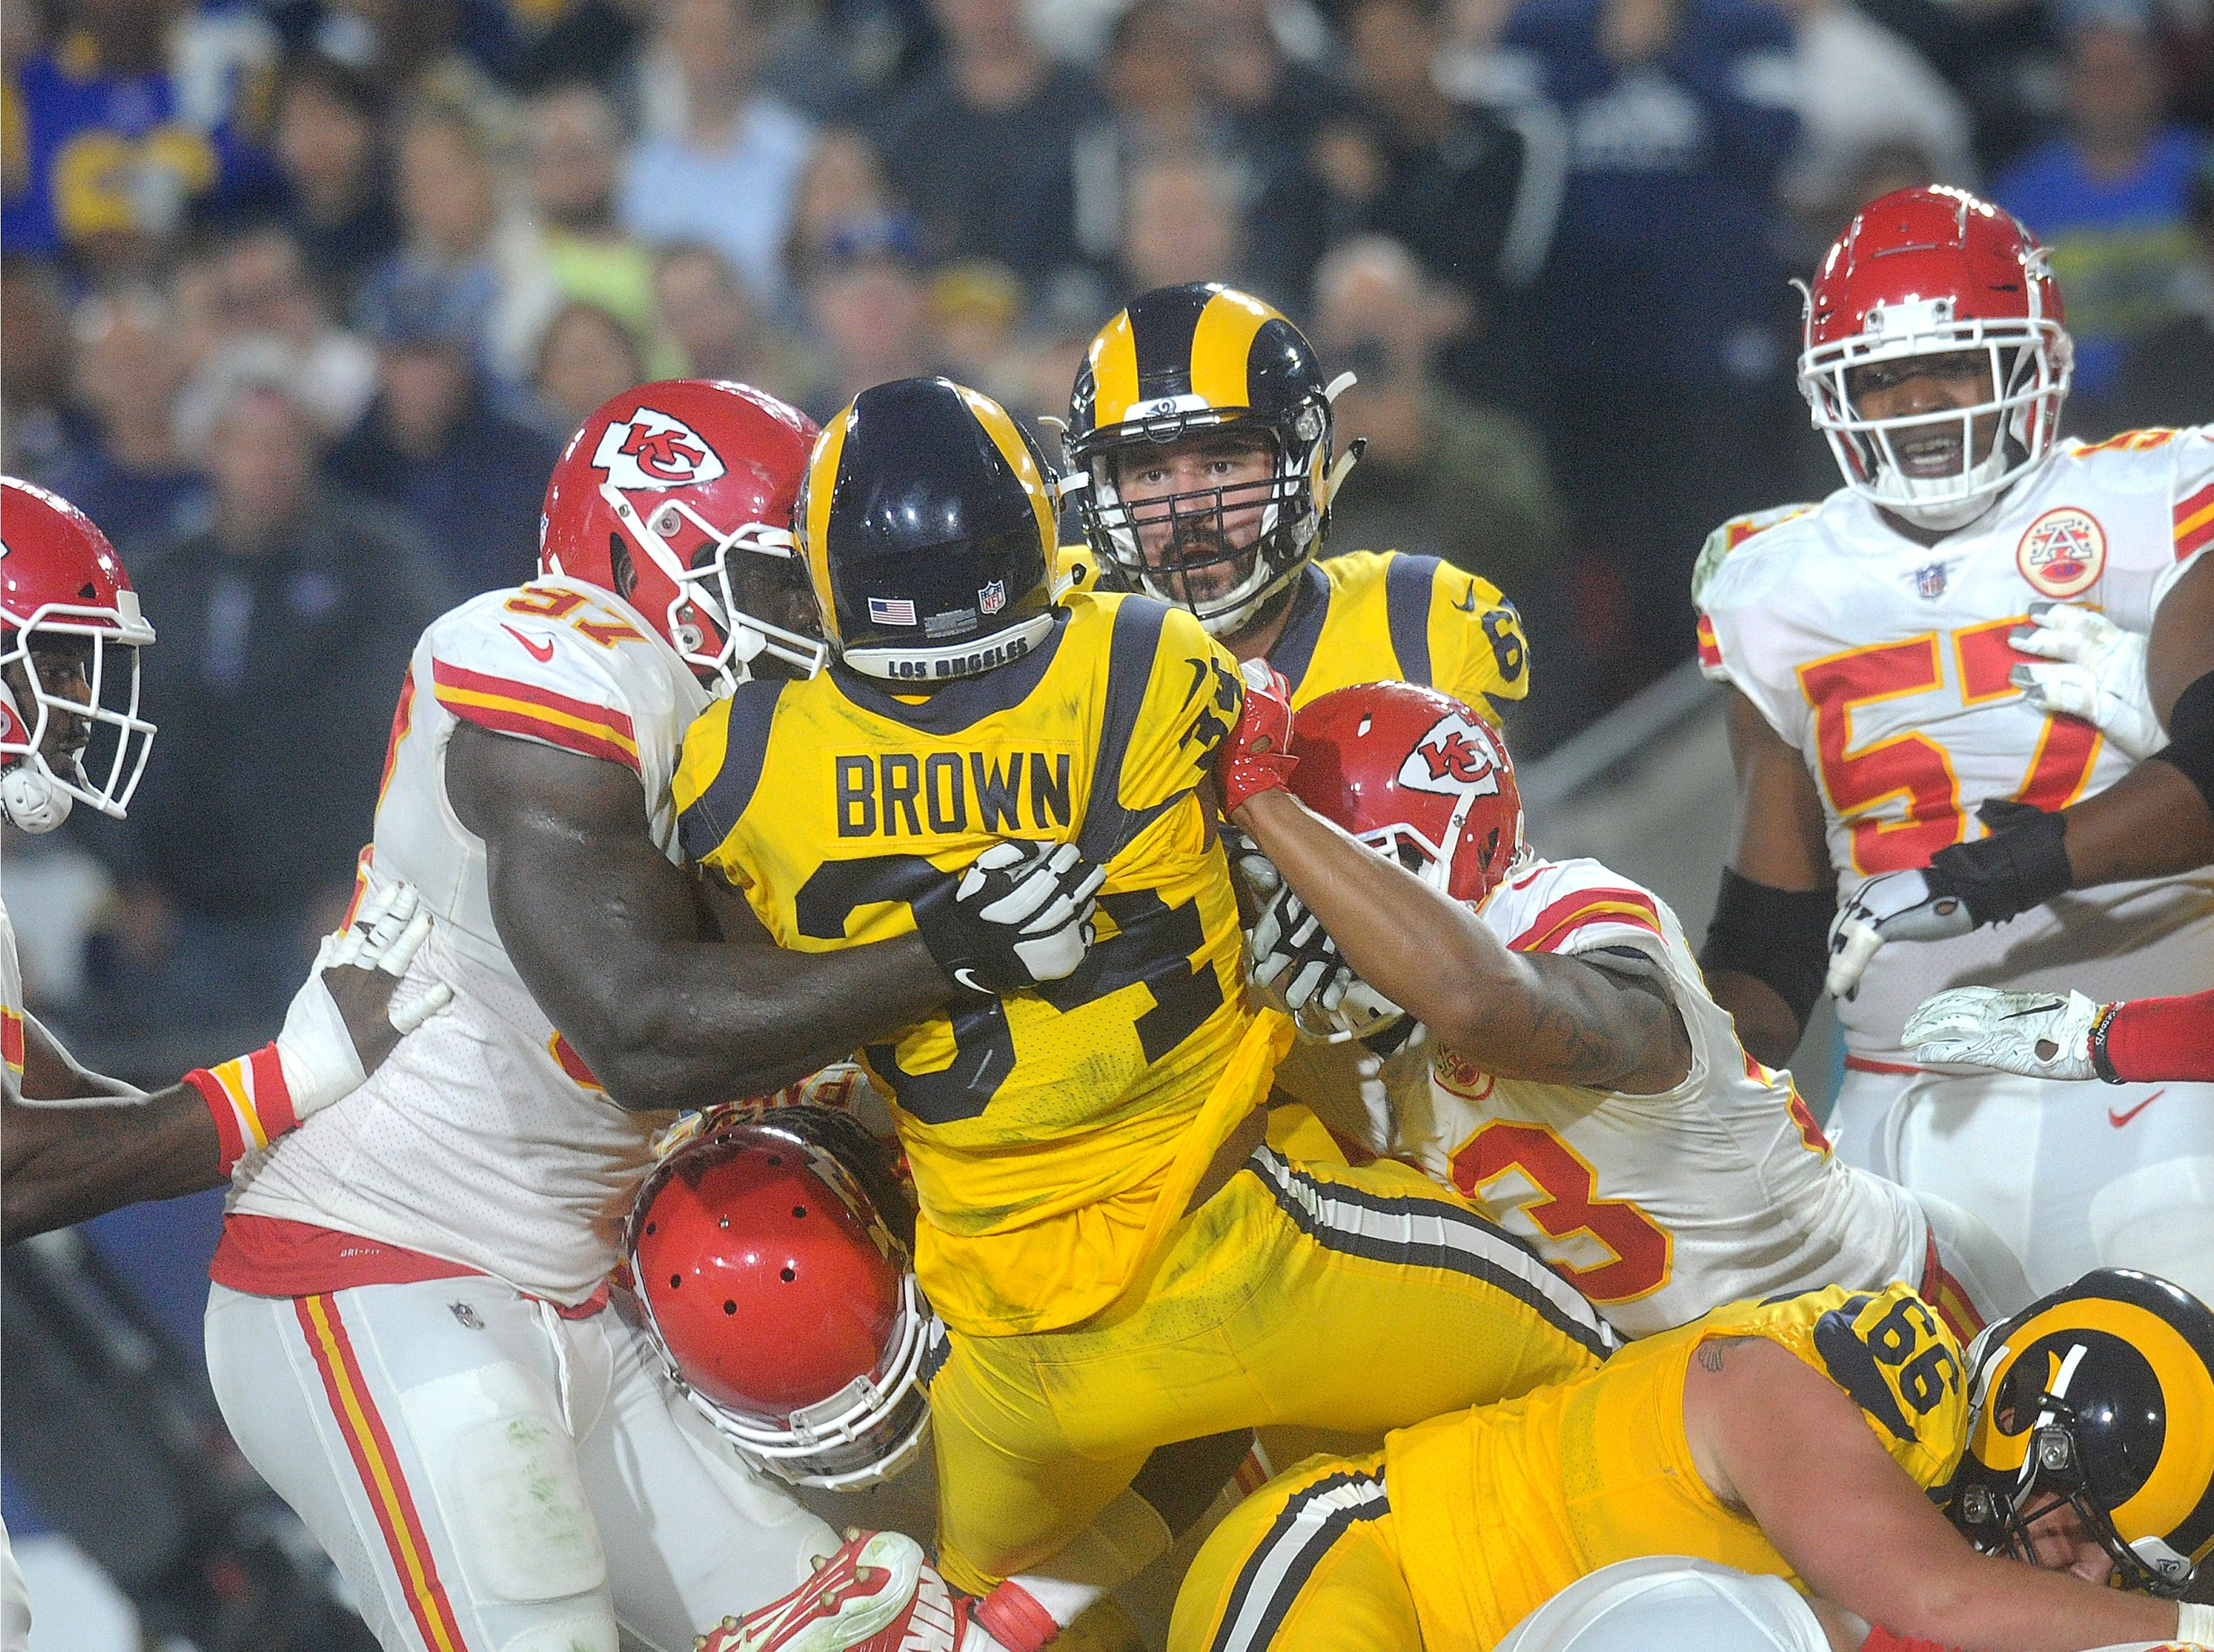 Malcolm Brown of the Rams is gang tackled by the Chiefs in a Monday night game at the Coliseum.